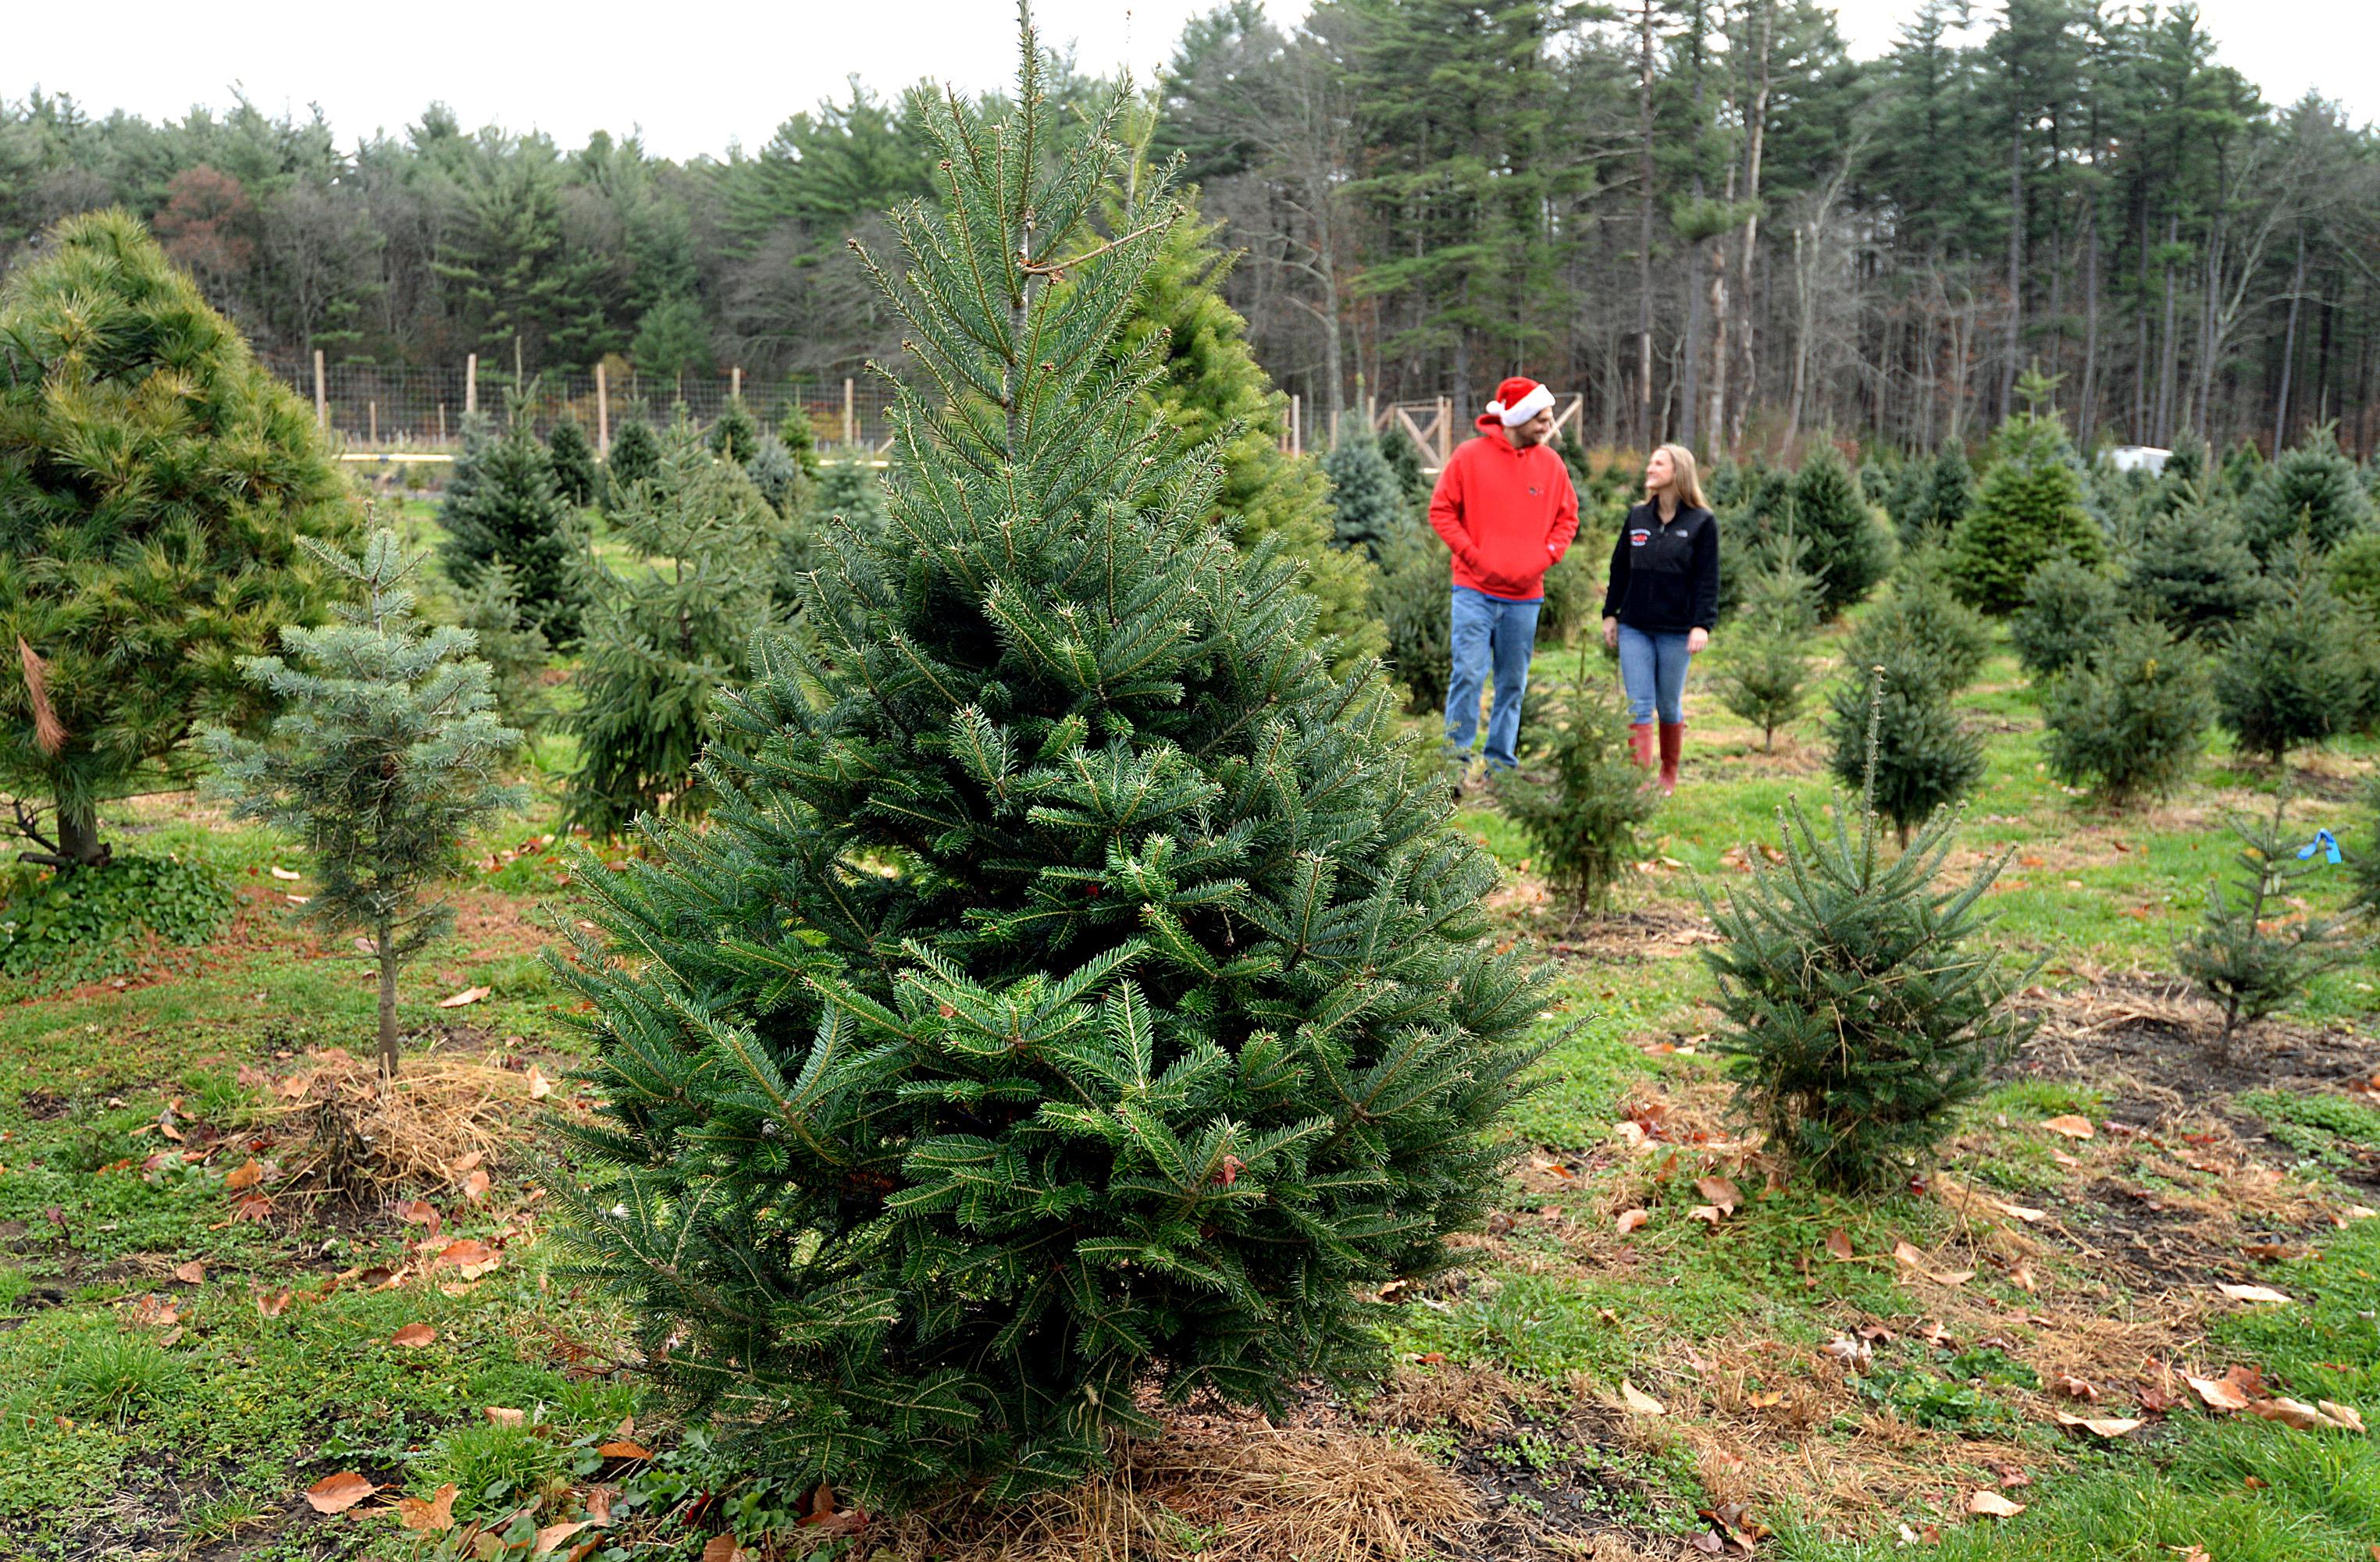 It S A Budding Business Down On The Tree Farm The Boston Globe